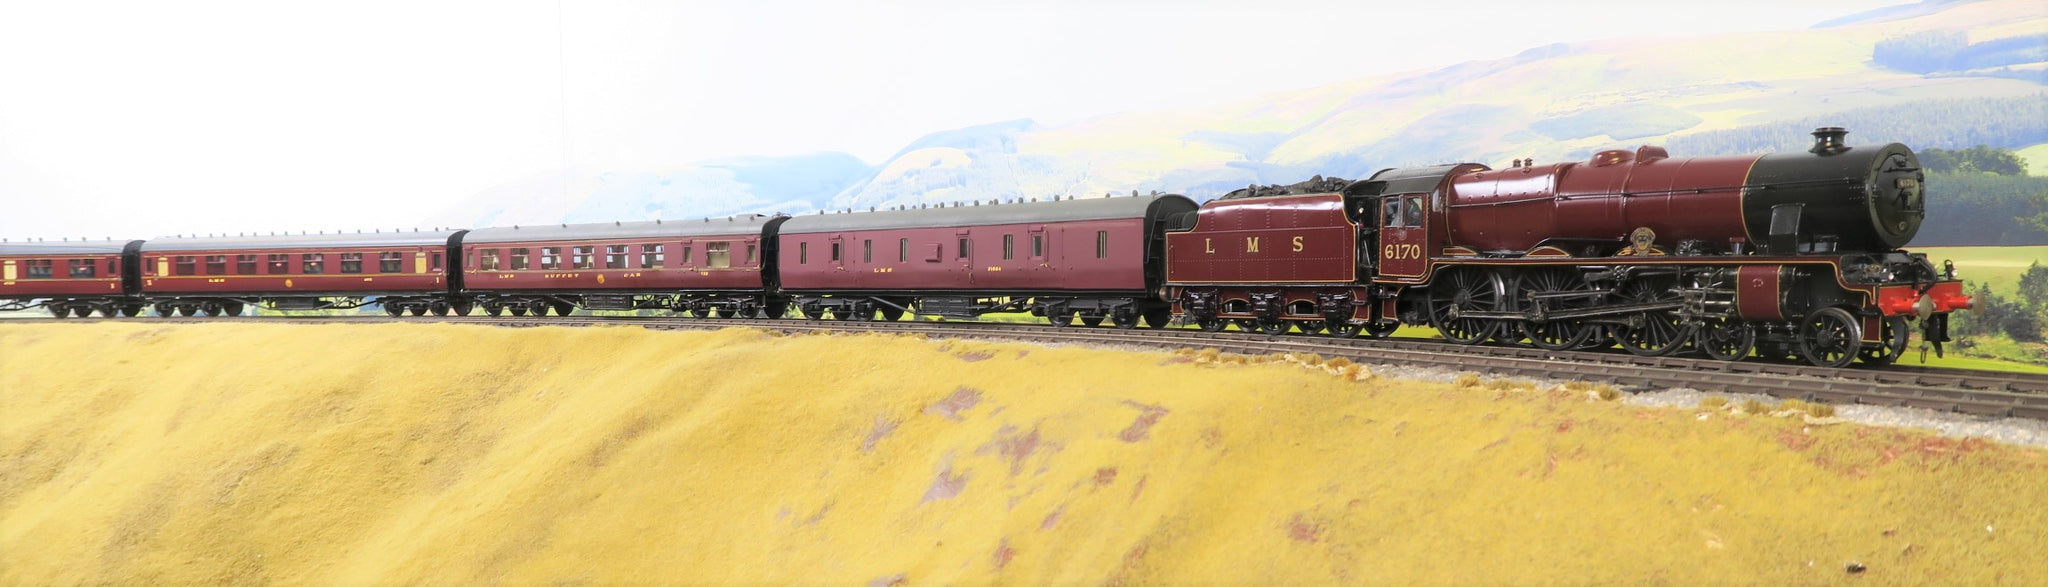 7mm Finescale O Gauge Kit Built LMS Lined Maroon Royal Scot Class 4-6-0 '6170' 'British Legion'